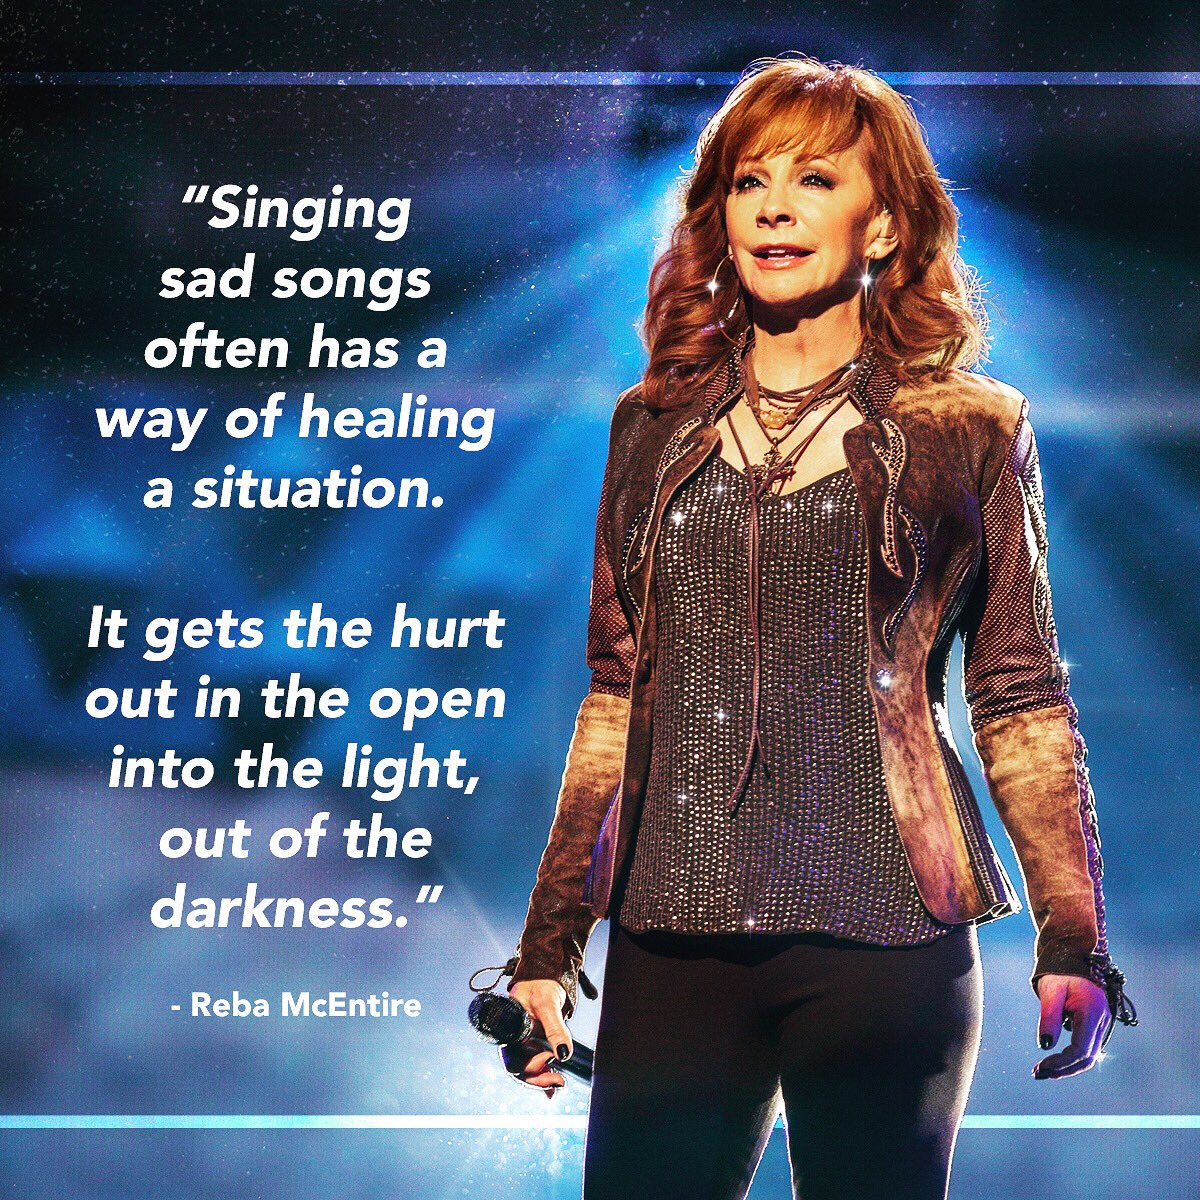 RT @reba: Singing sad songs often has a way of healing a situation. #WednesdayWisdom https://t.co/1JB4IgeYdm